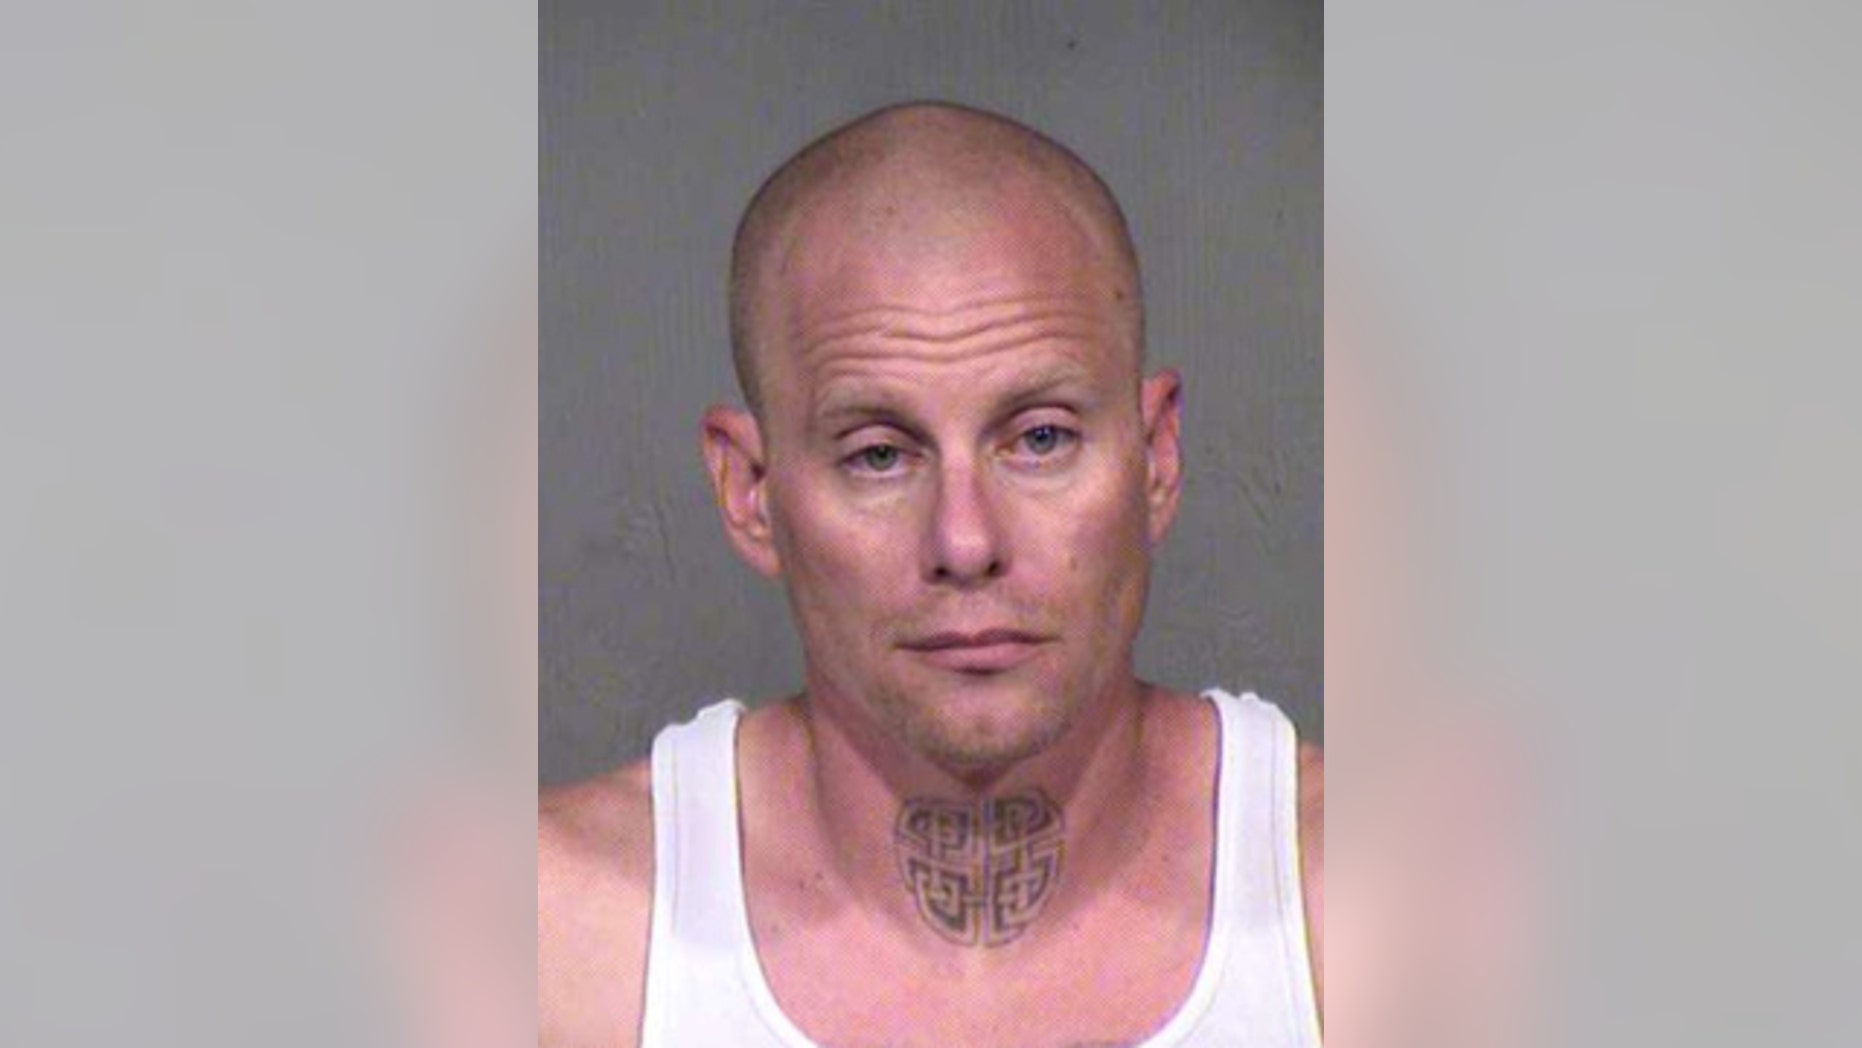 This photo shows Christopher Hoffman, arrested in connection with a drive-by road rage shooting in suburban Phoenix Saturday, Oct. 3, 2015. (Maricopa County Sheriff's Office)